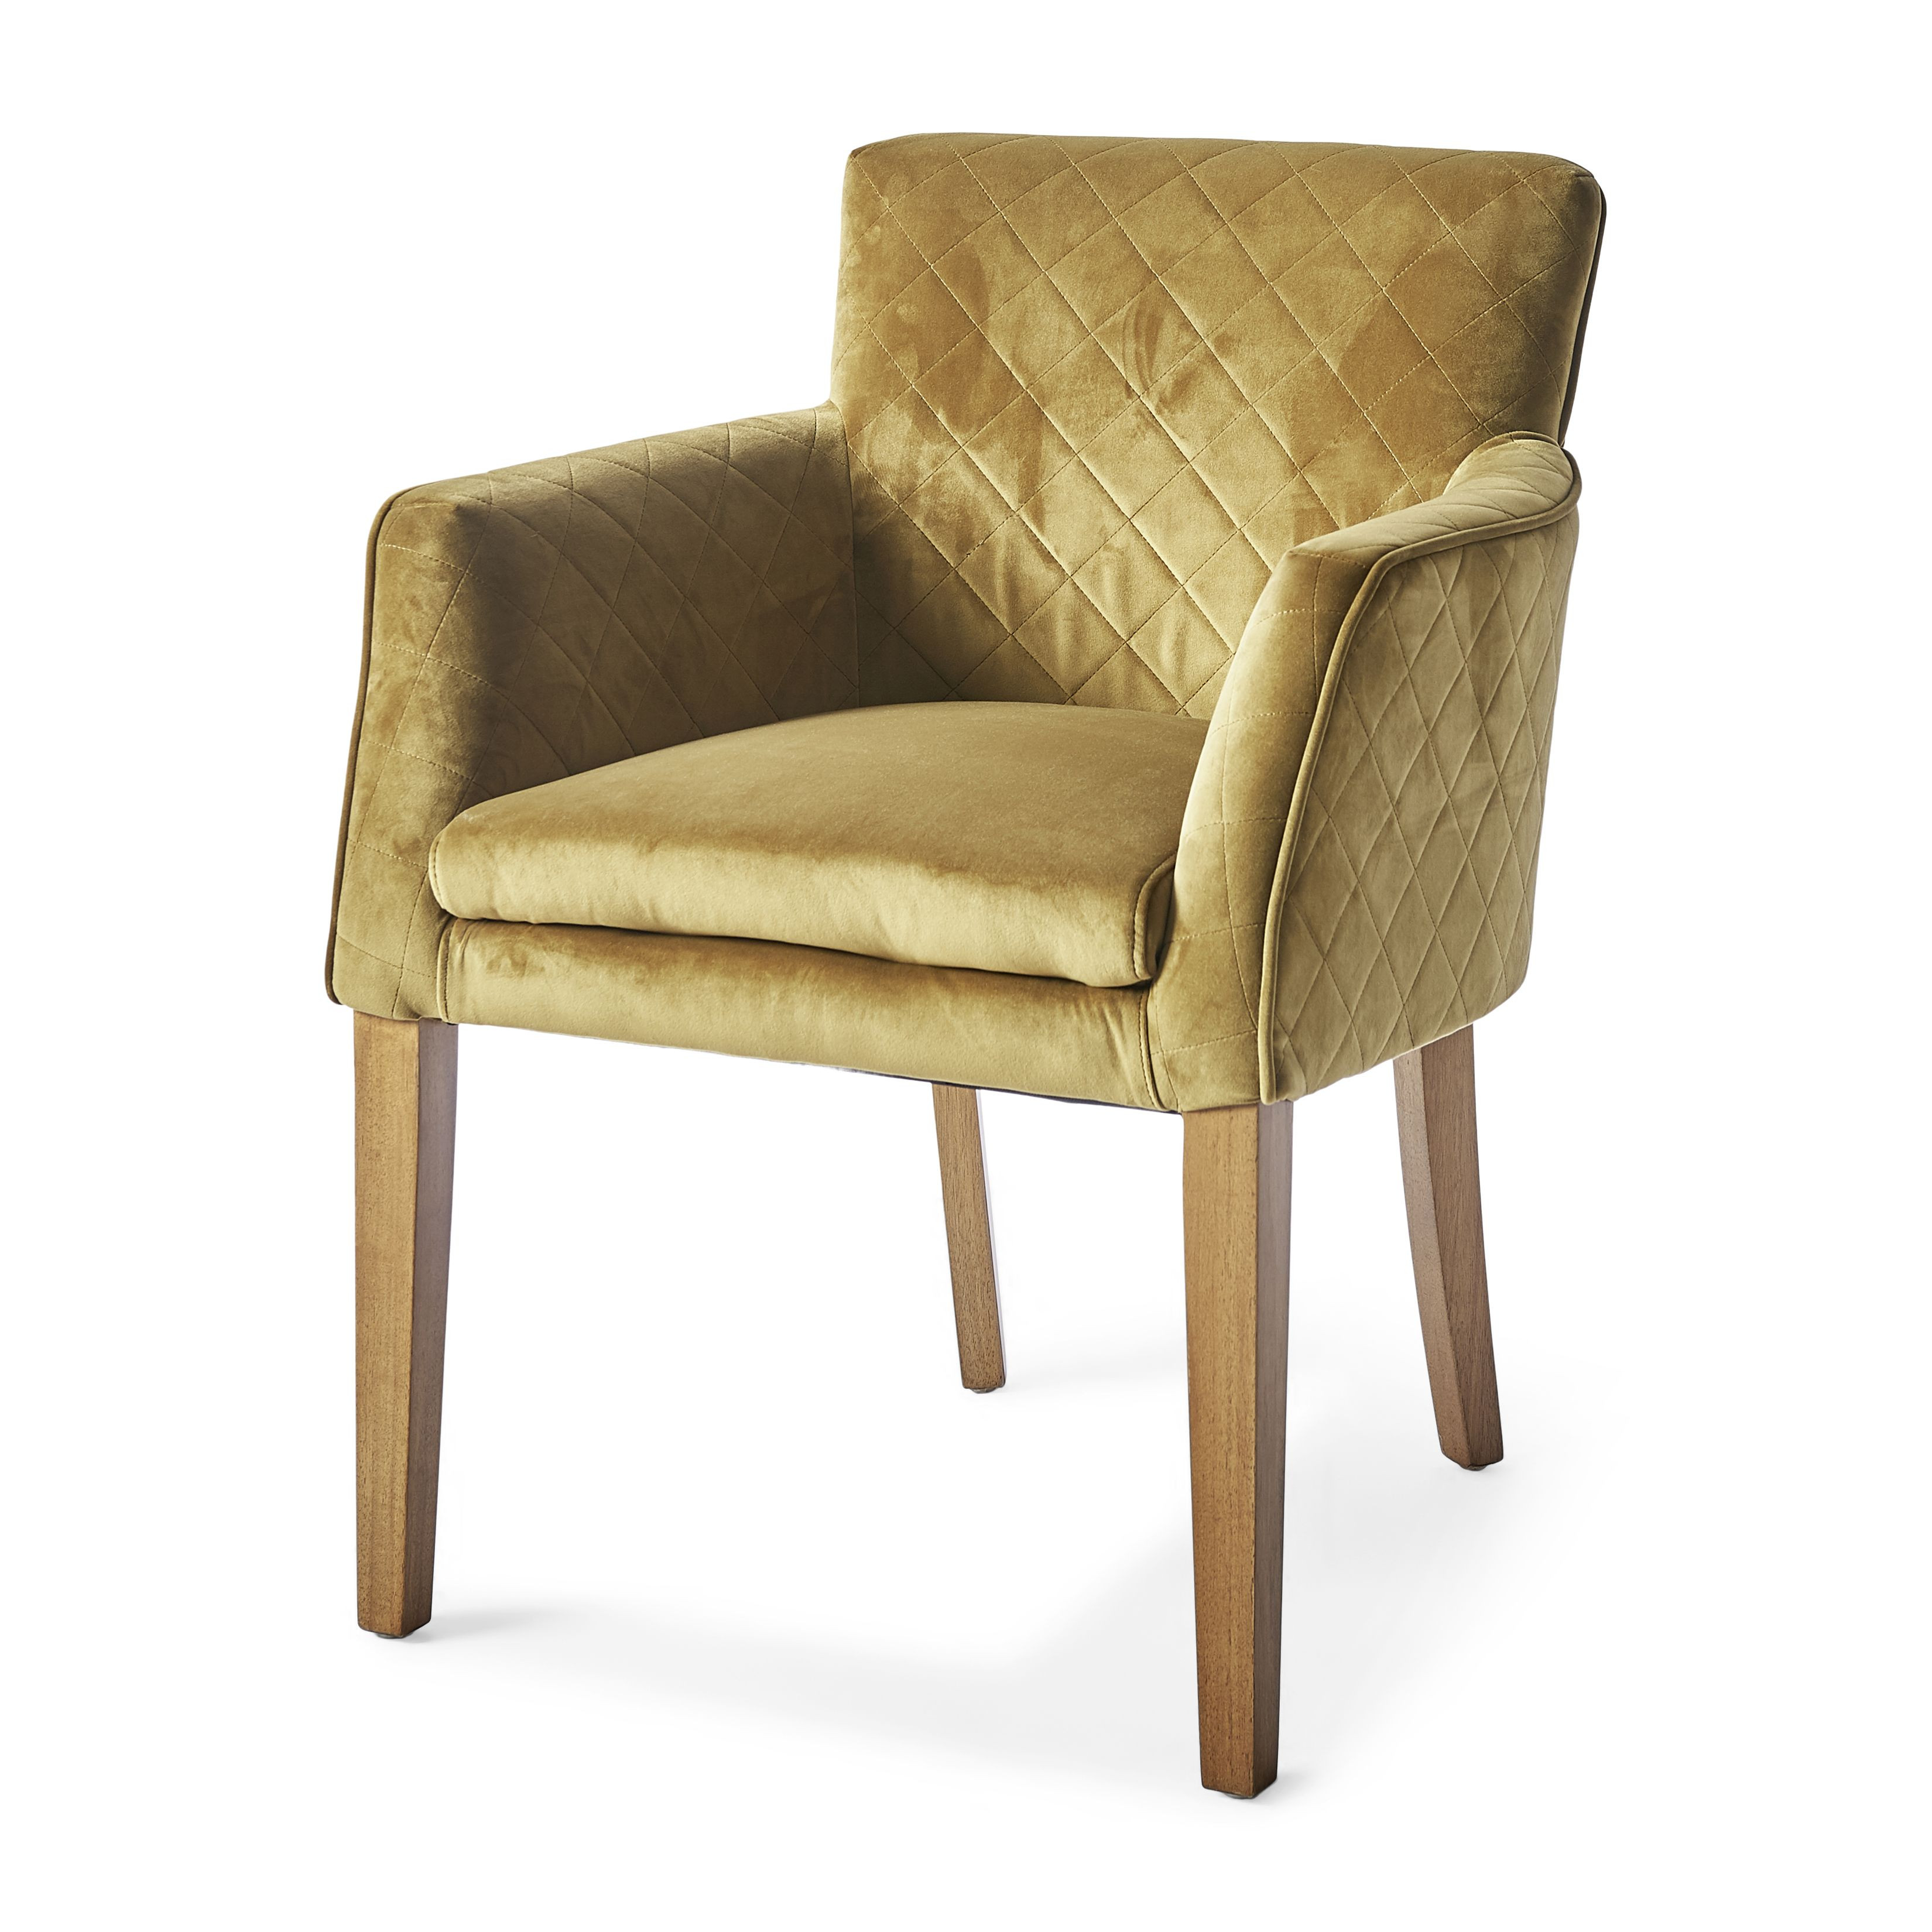 Waverly Dining Armchair velvet windsor green / Rivièra Maison